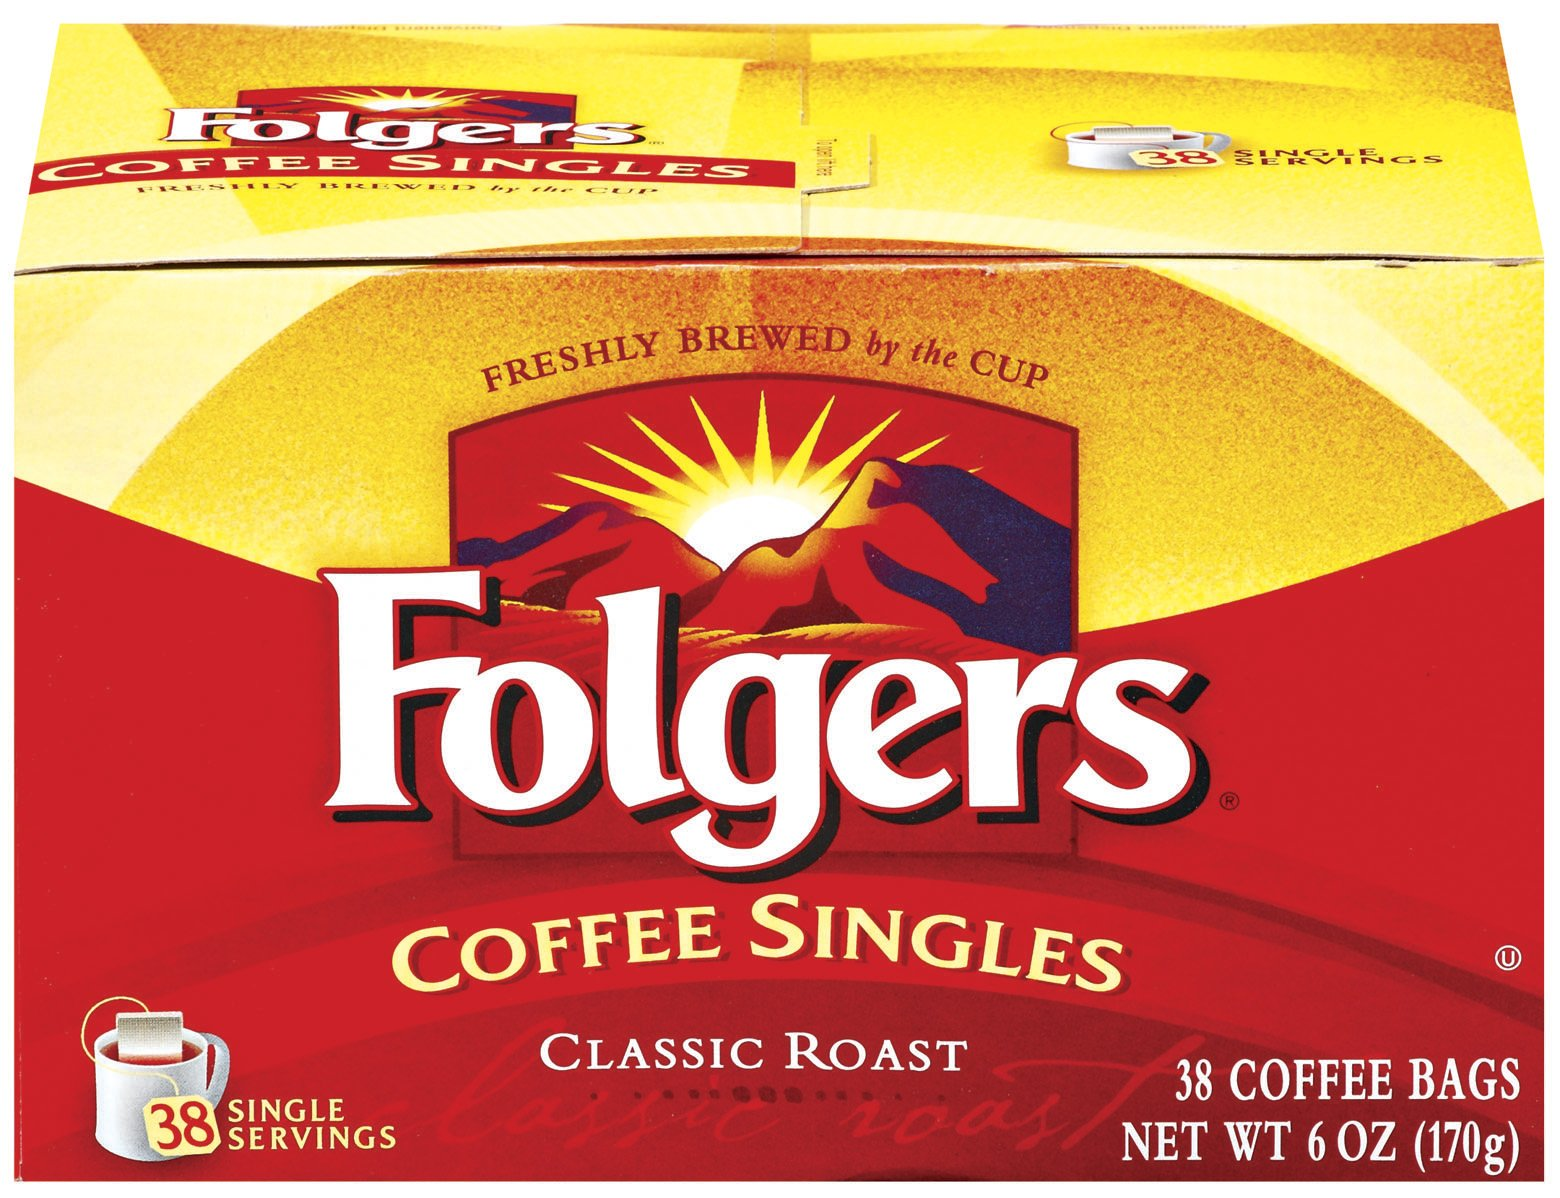 Folgers Coffee Singles Classic Roast Coffee Bags, 6 Ounce - 38 Count each (Pack of 6) by Folgers